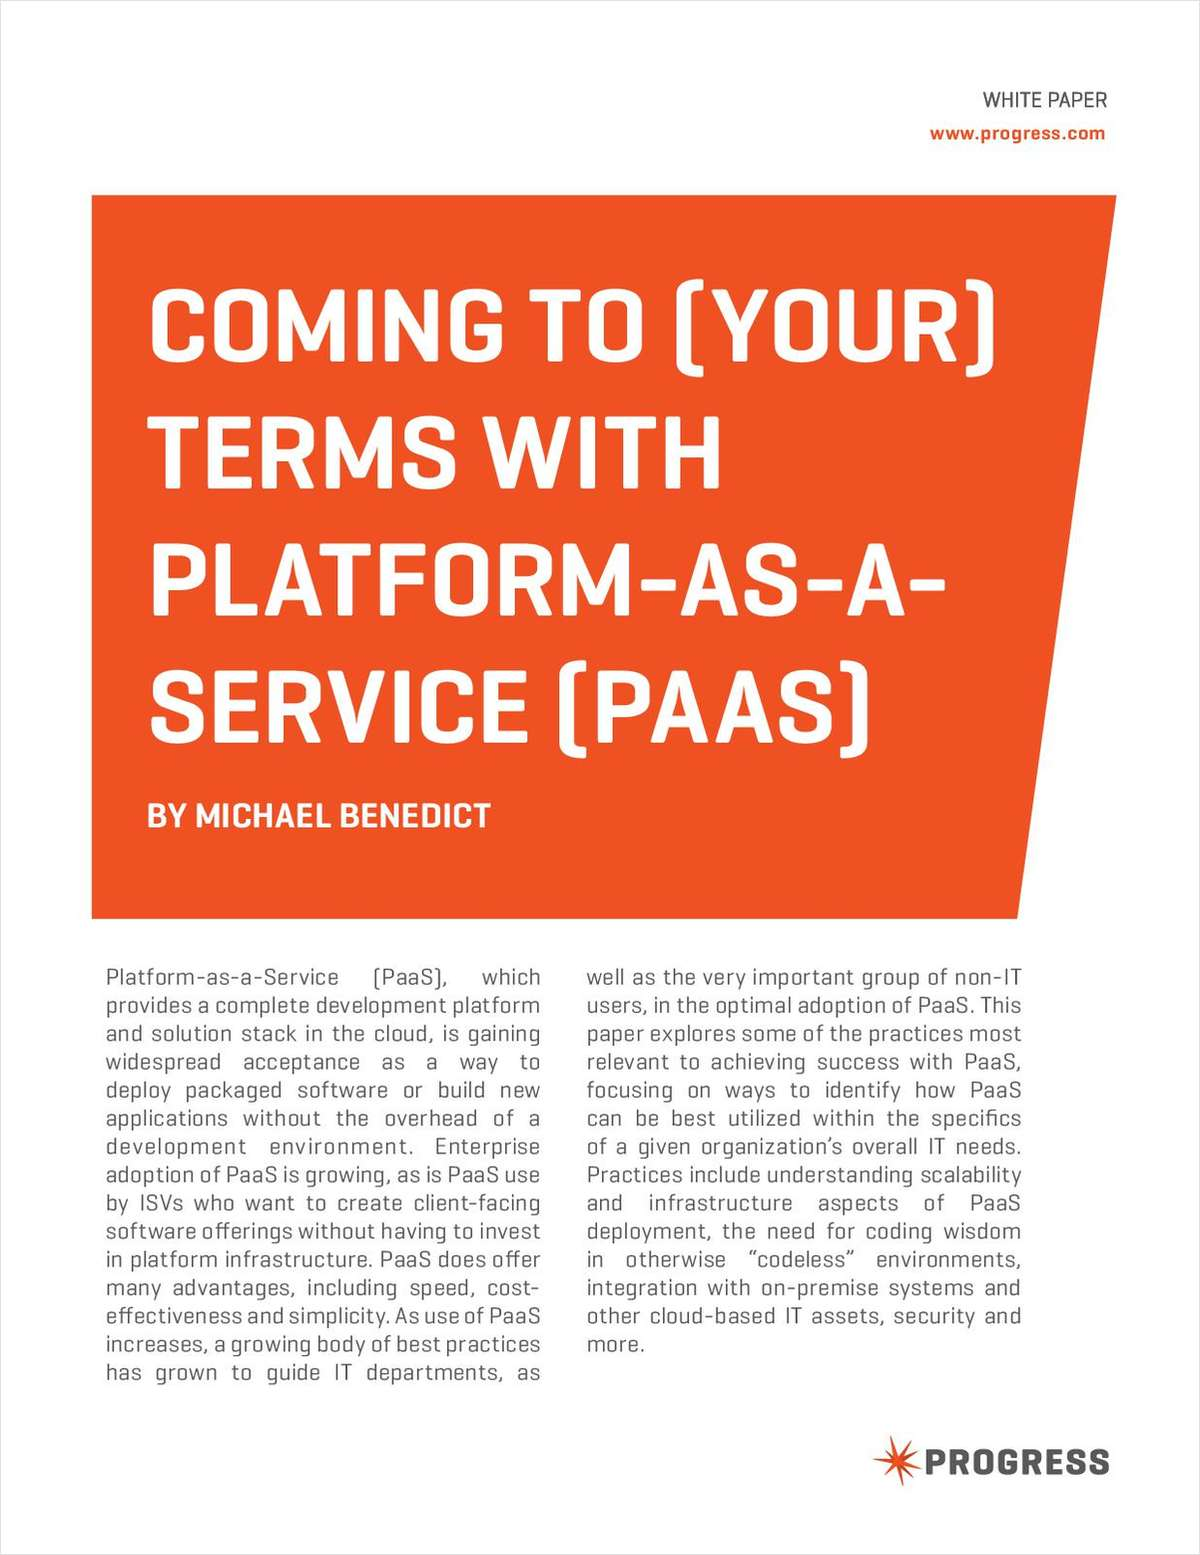 Coming to Terms with Platform as a Service